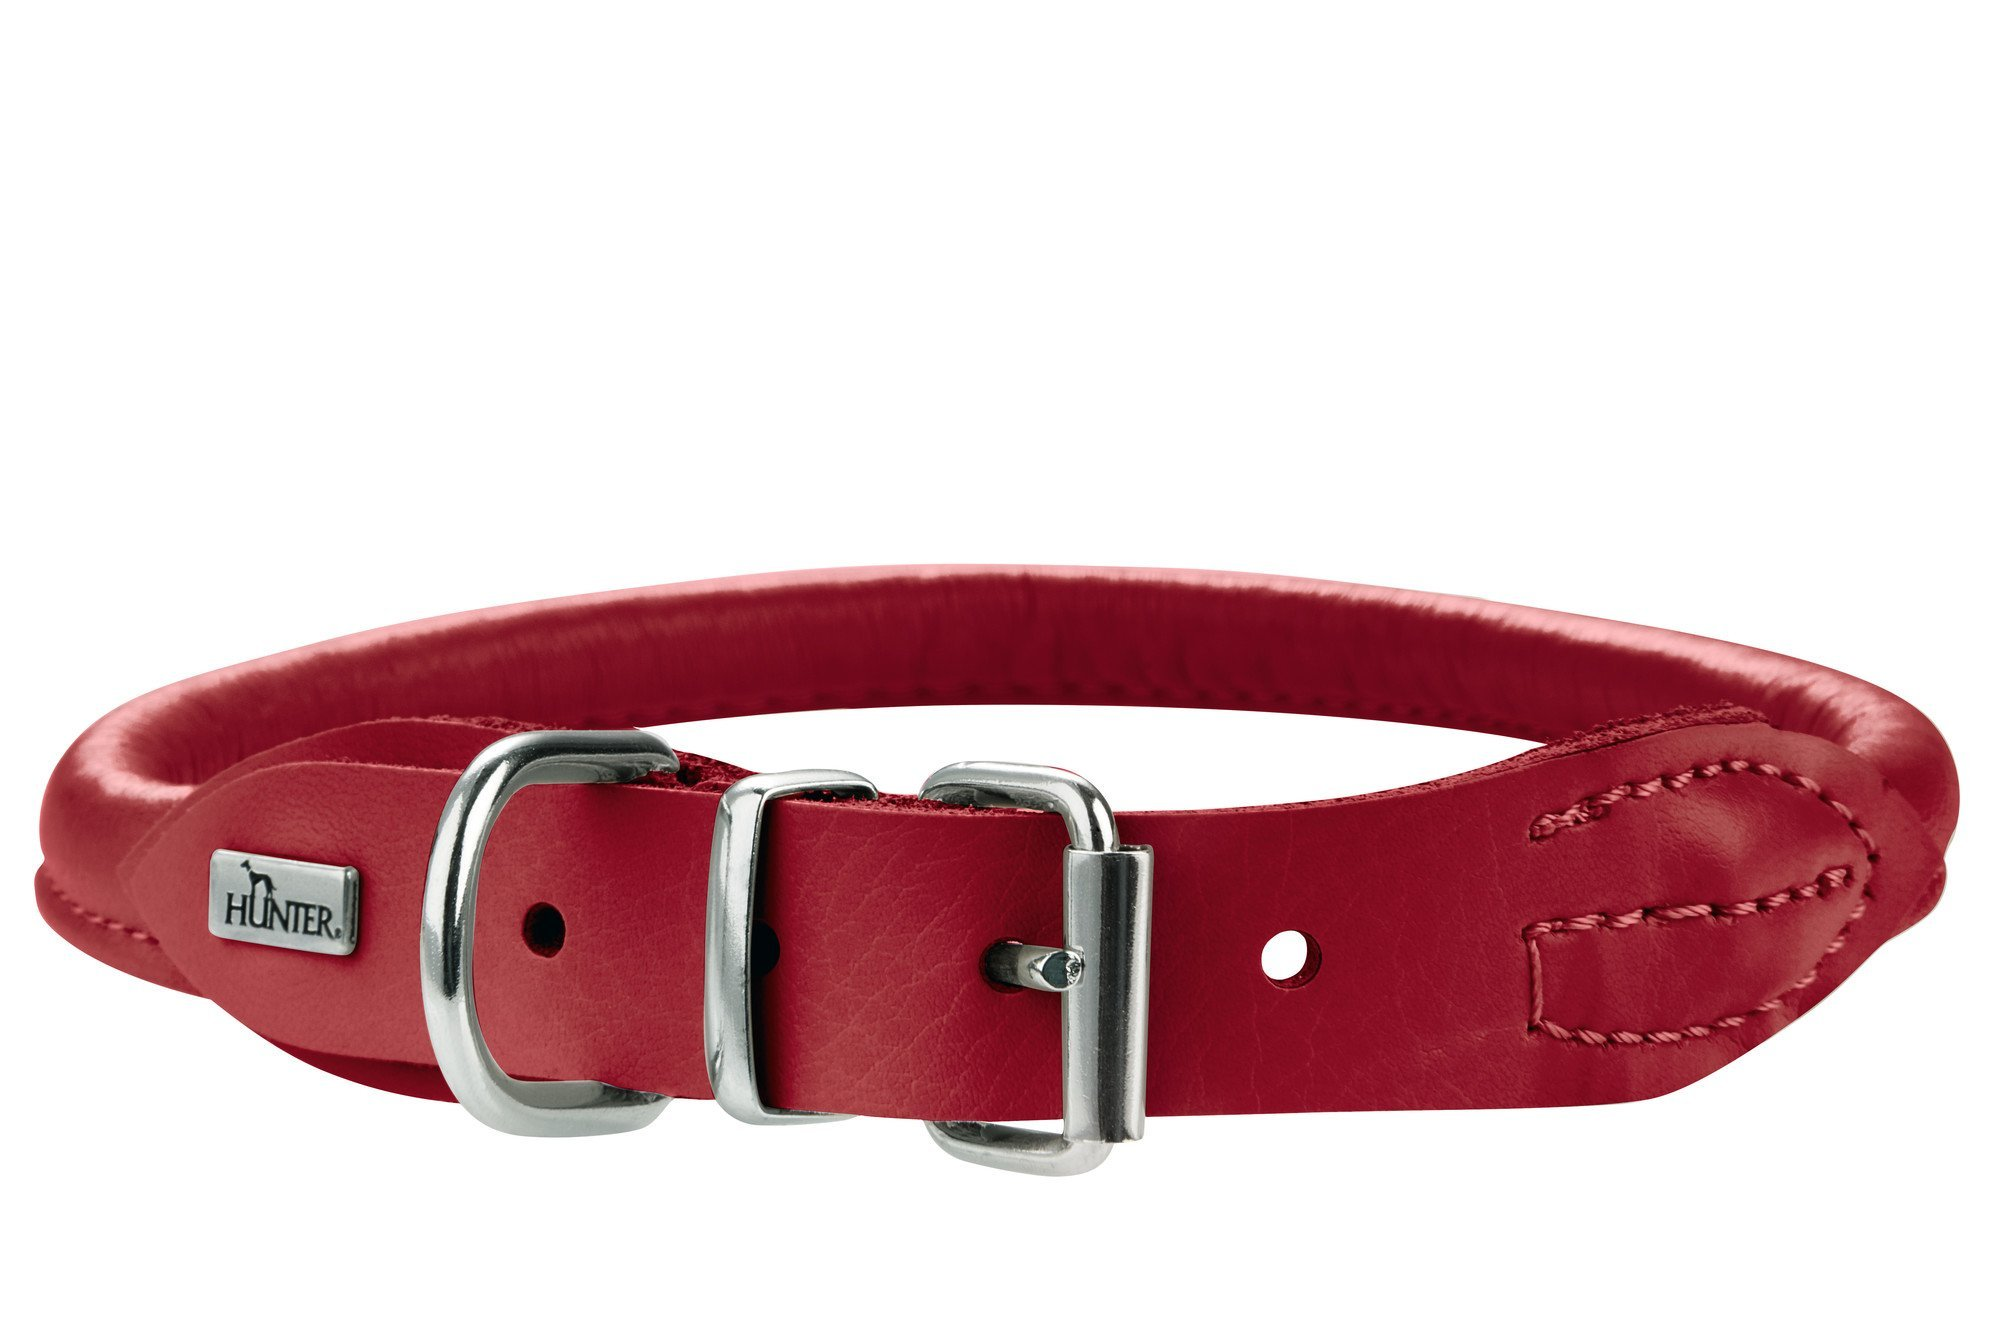 Hunter HT61459 Round & Soft Elk Leather Collar, One Size